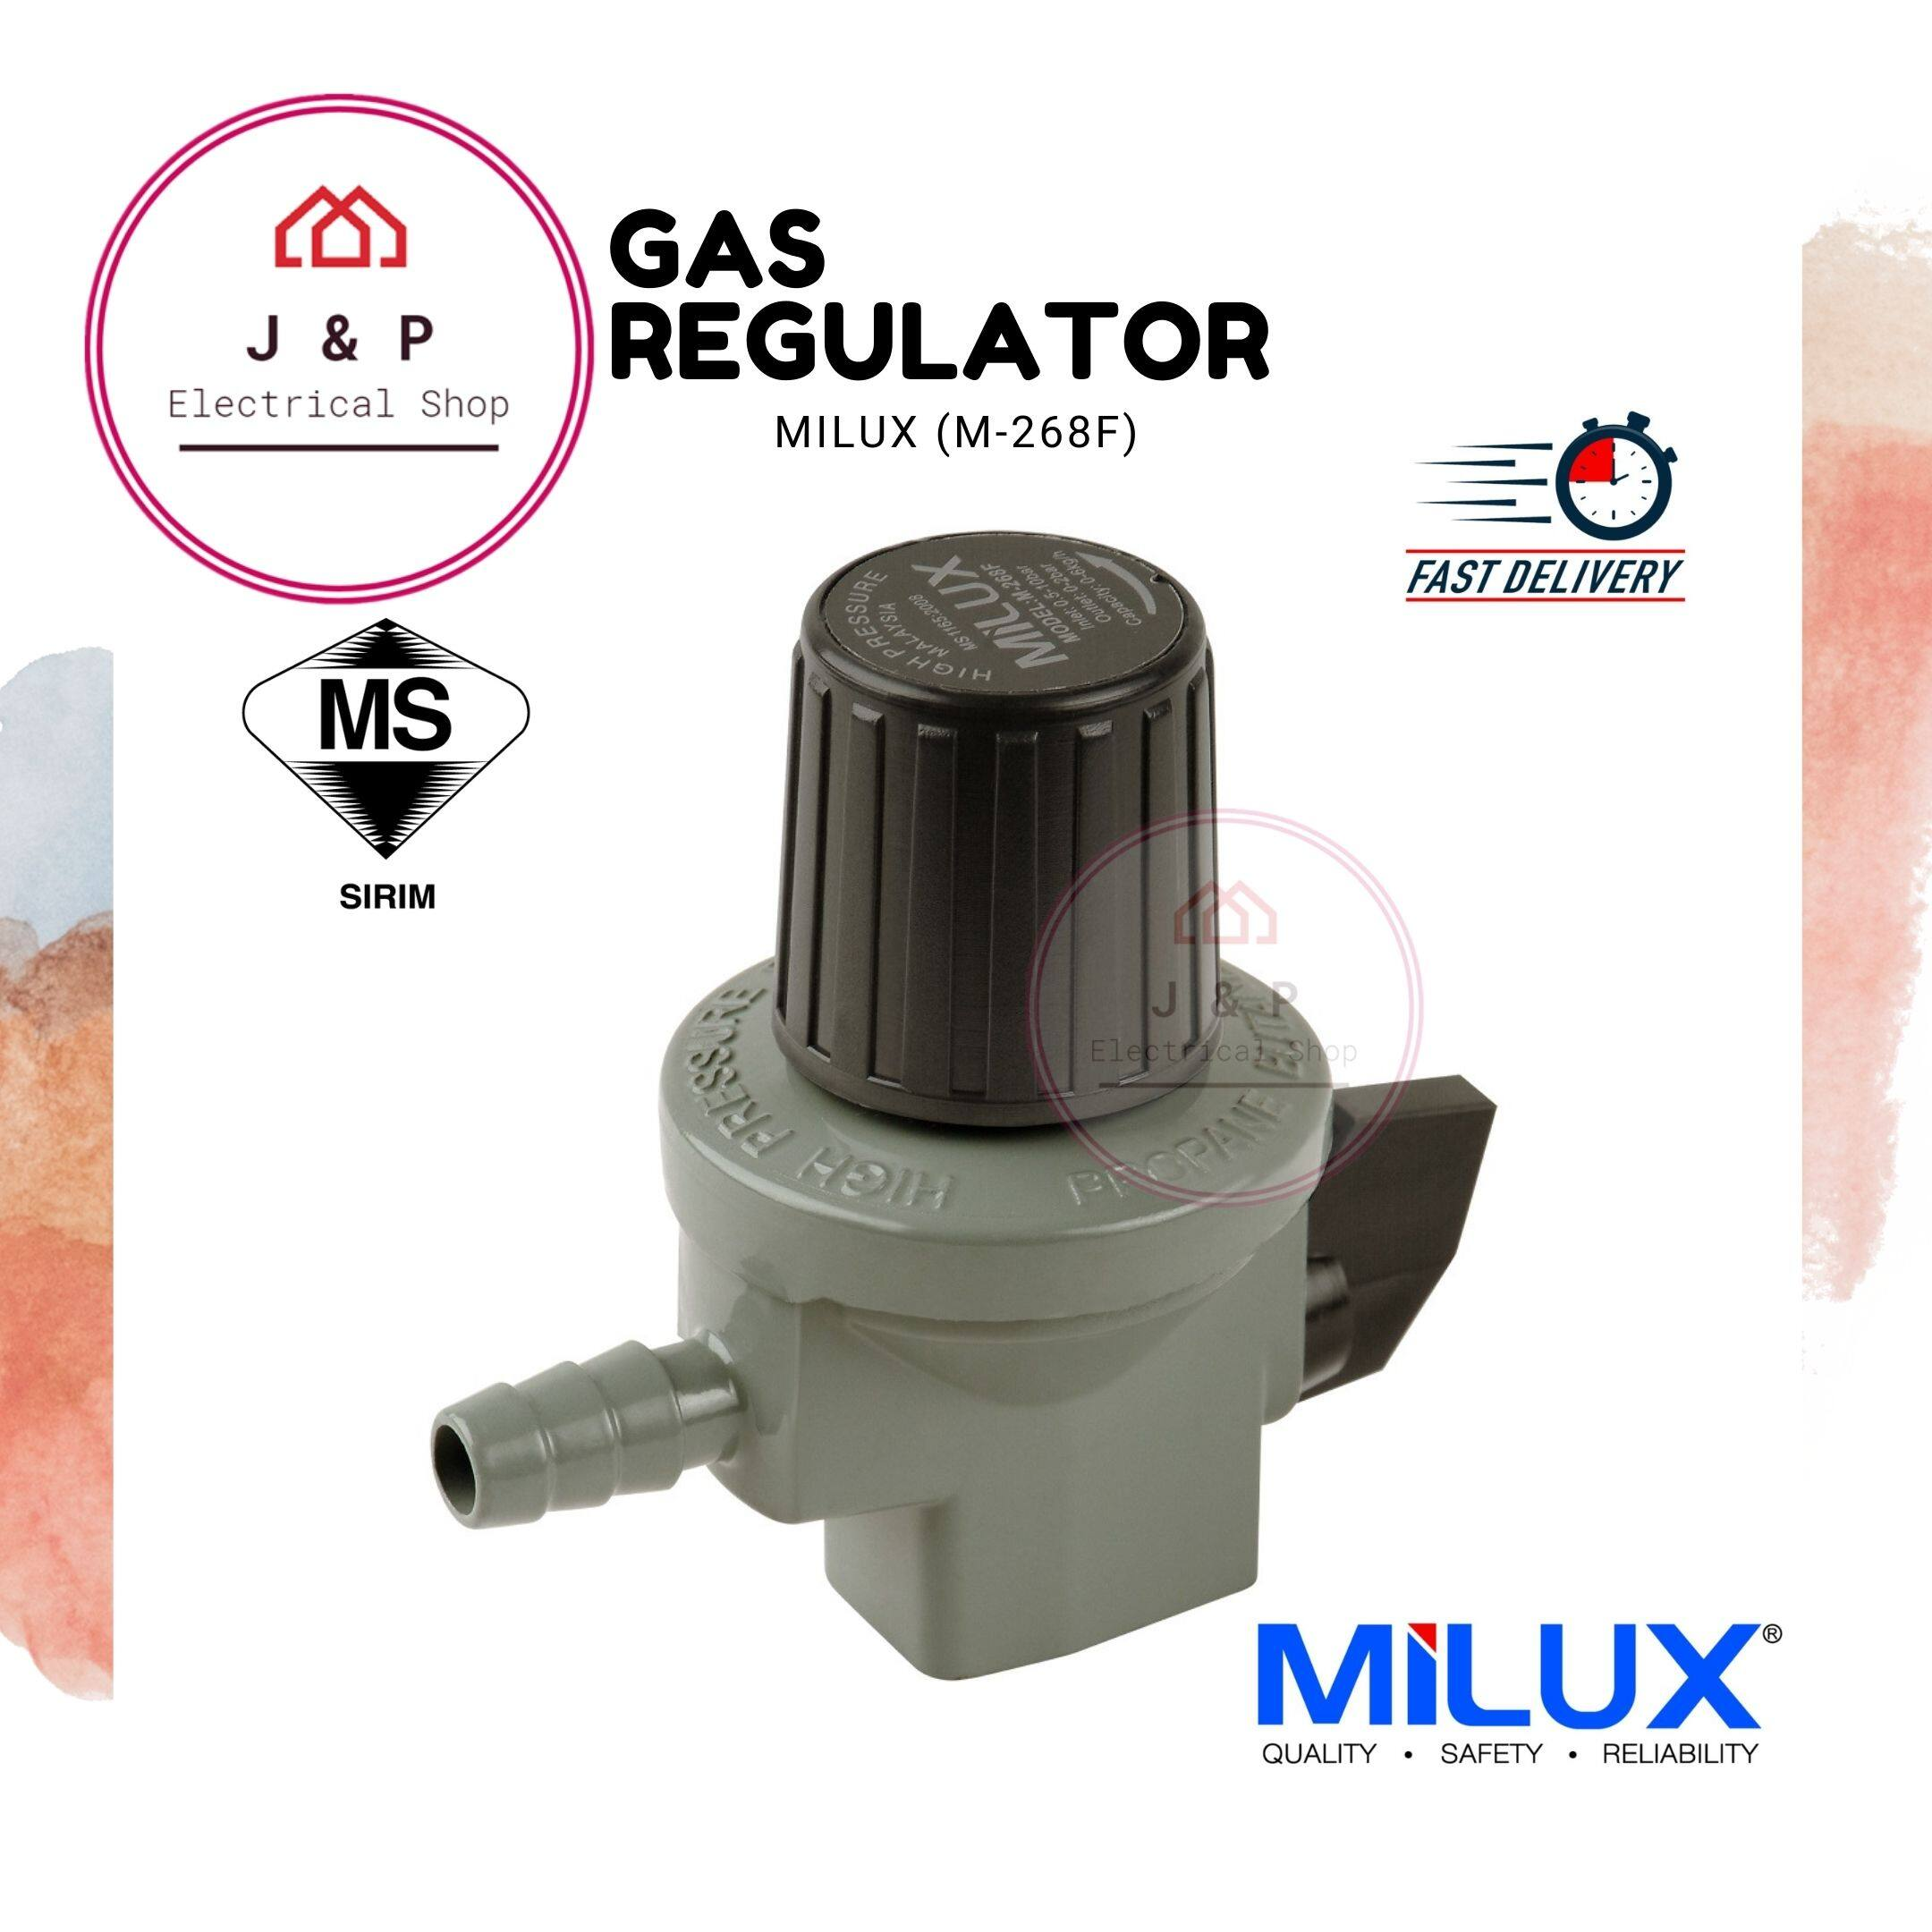 MILUX Gas Regulator (High Pressure) M-268F 煤气头 [Ready Stock 现货]1542462144-1603023268757-0